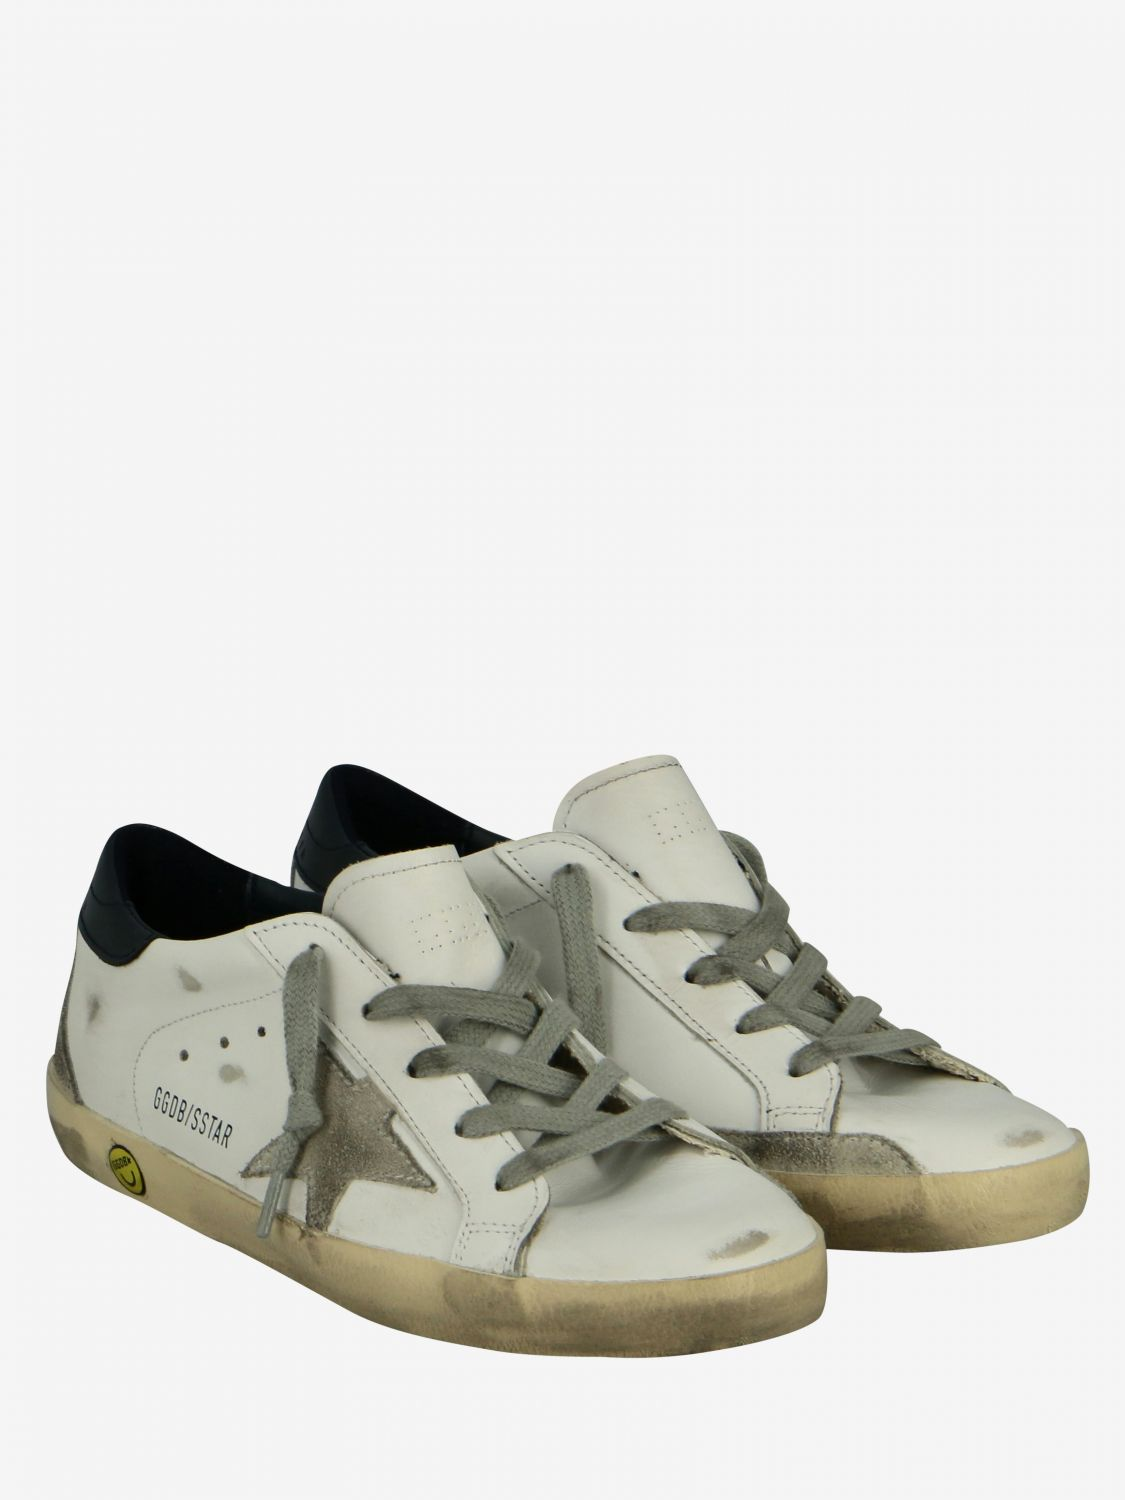 Shoes kids Golden Goose white 2